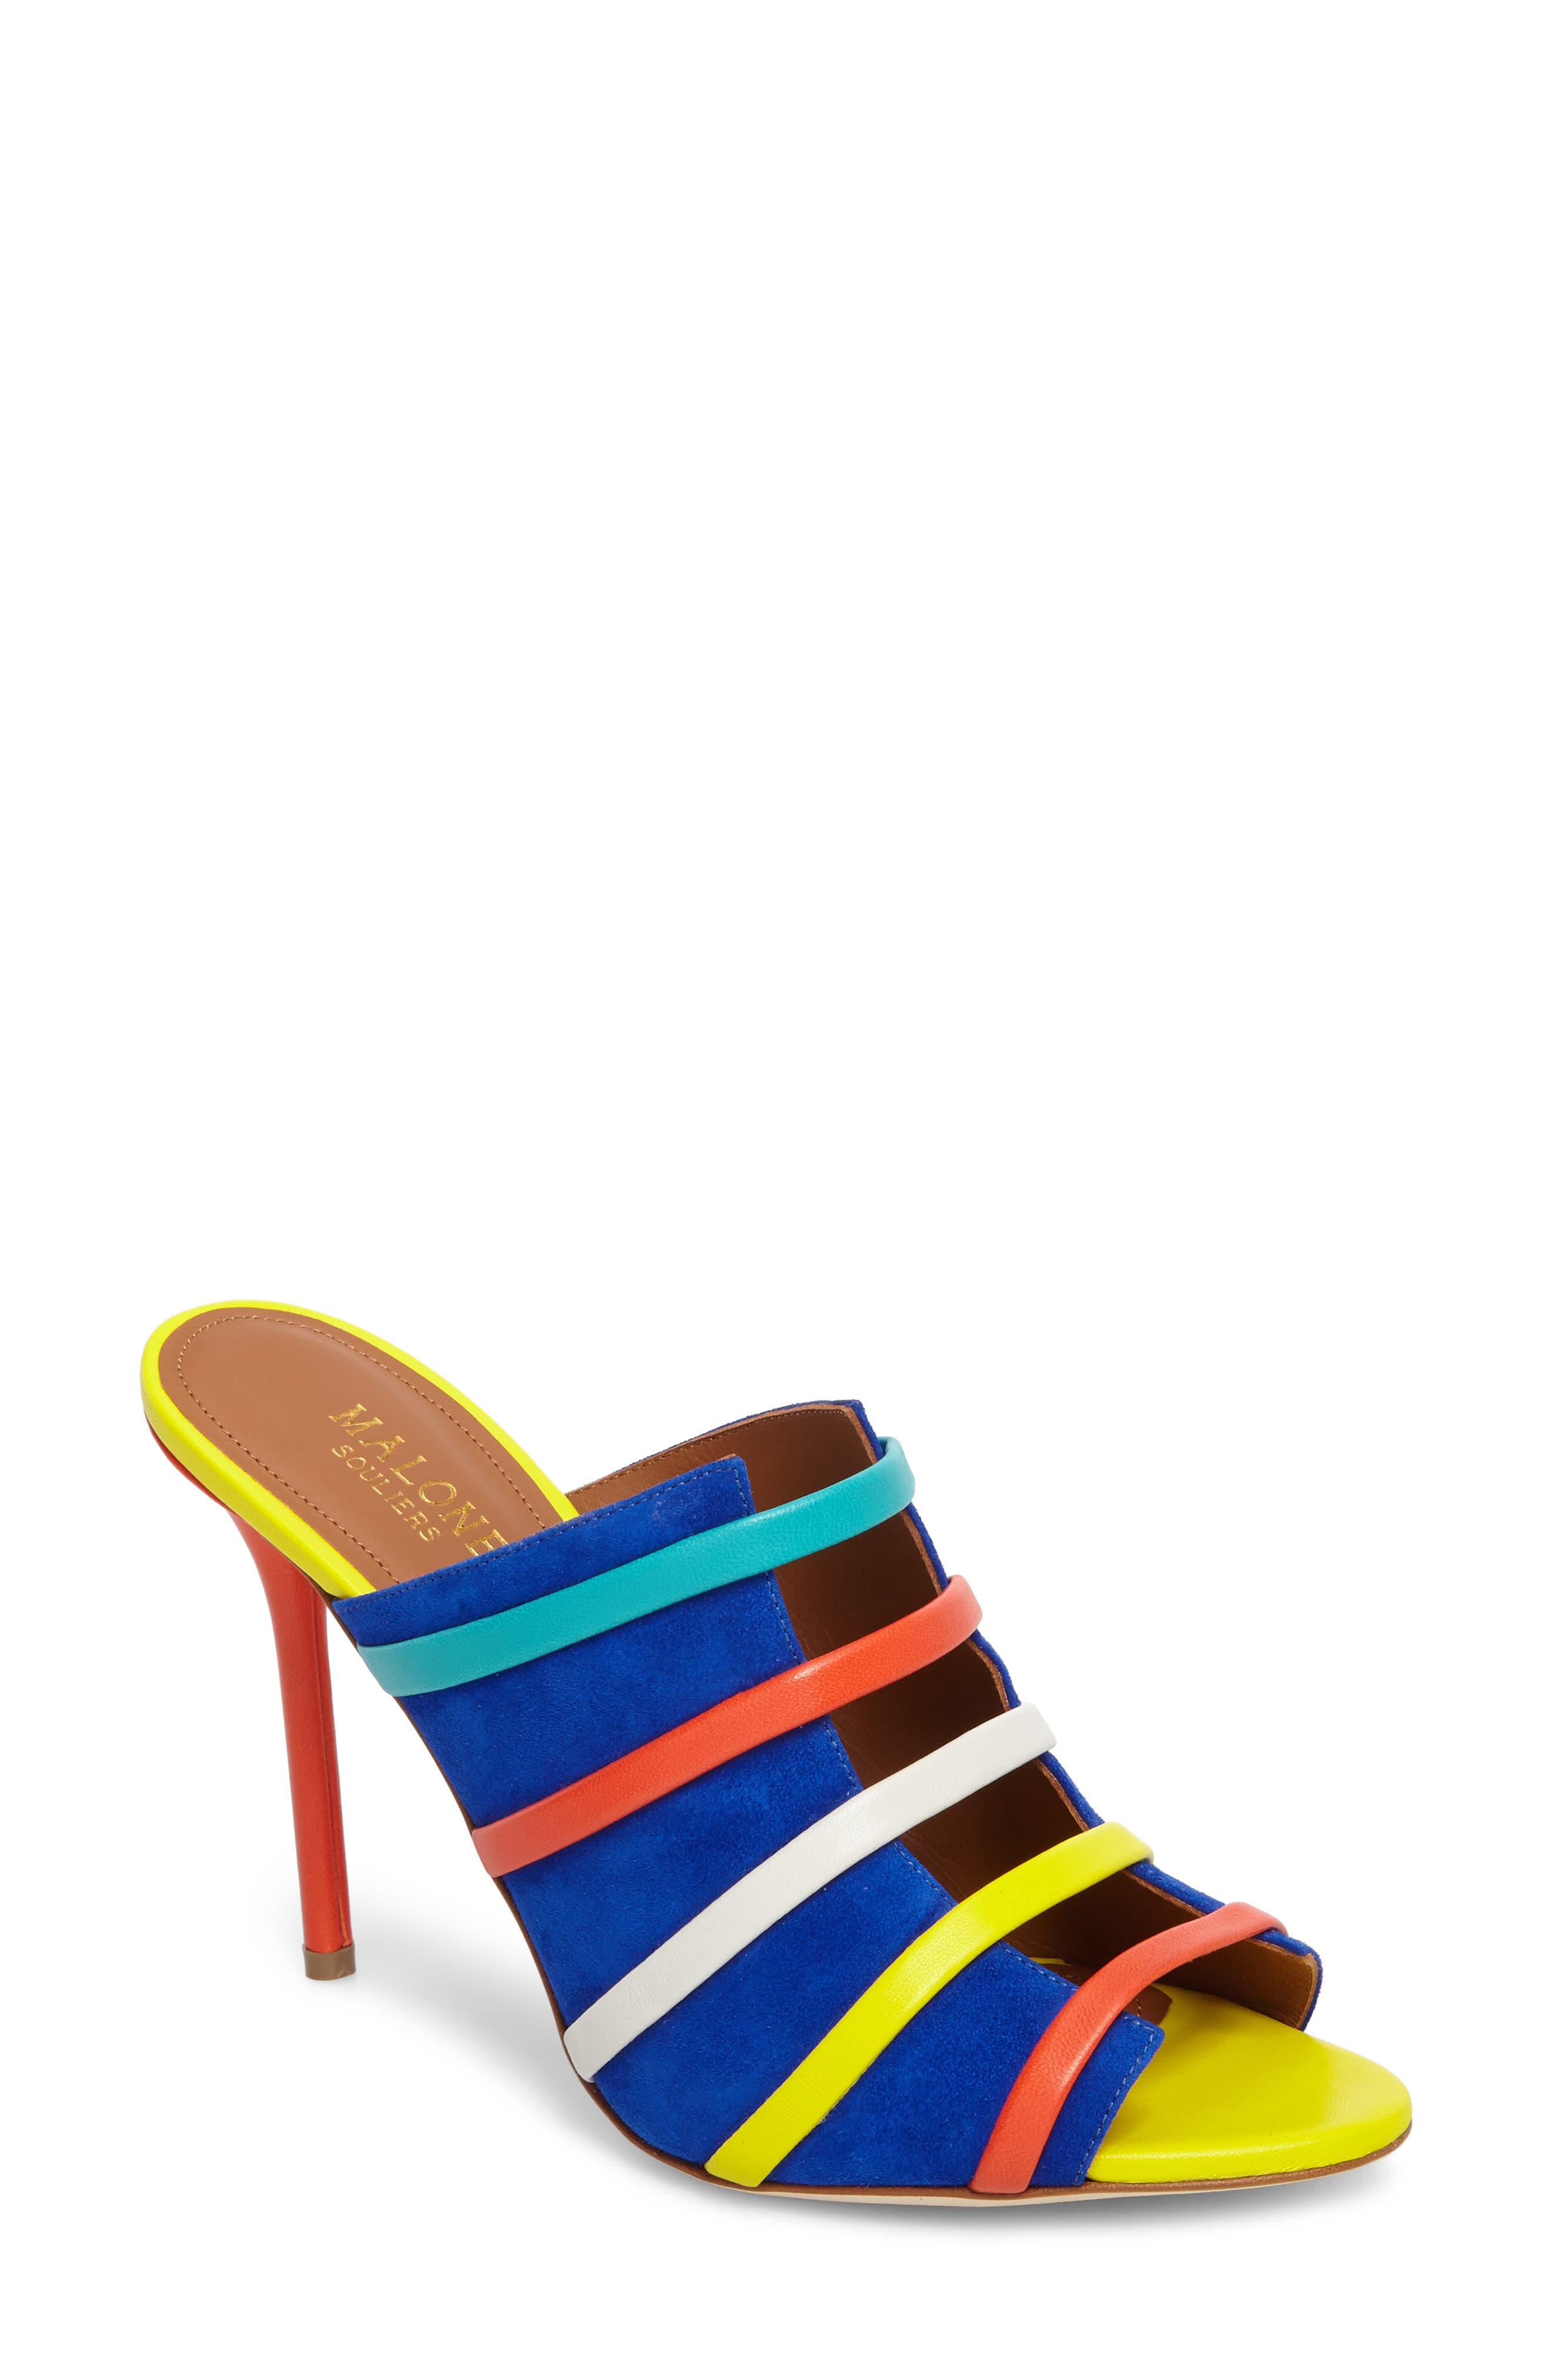 Zoe Banded Mule,                         Main,                         color, Electric Blue/ Flame/ Yellow